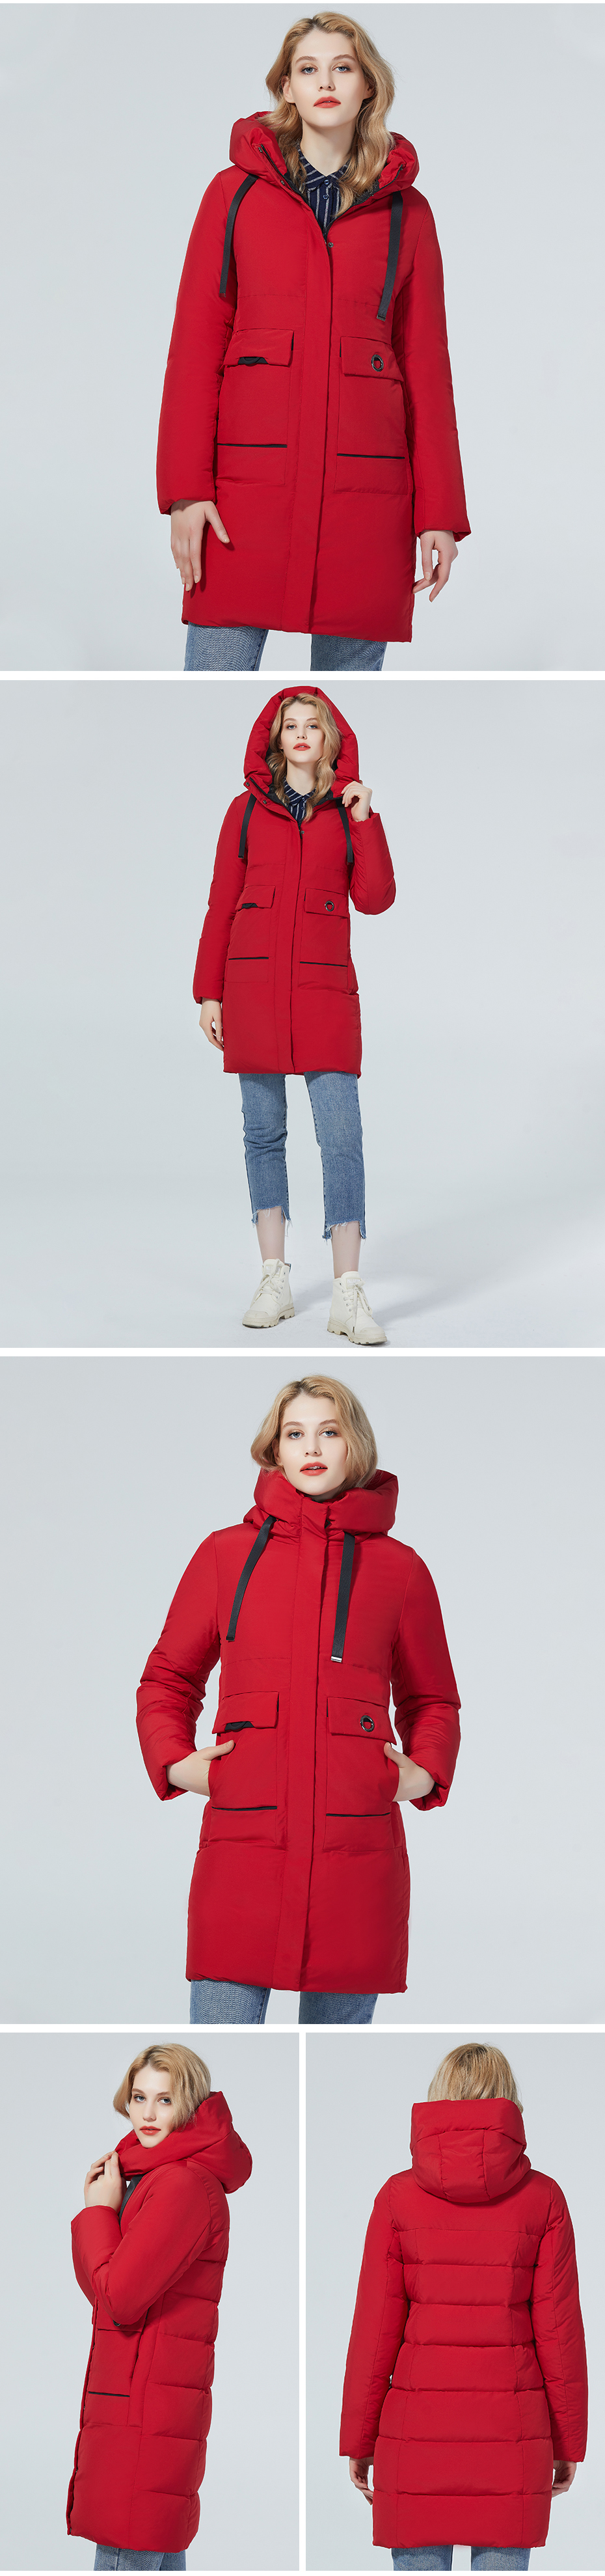 Diaosnowly 2020 new winter coat for women warm fashion woman jacket long female high quality brand jackets and parkas for women winter clothes outwear coat women long